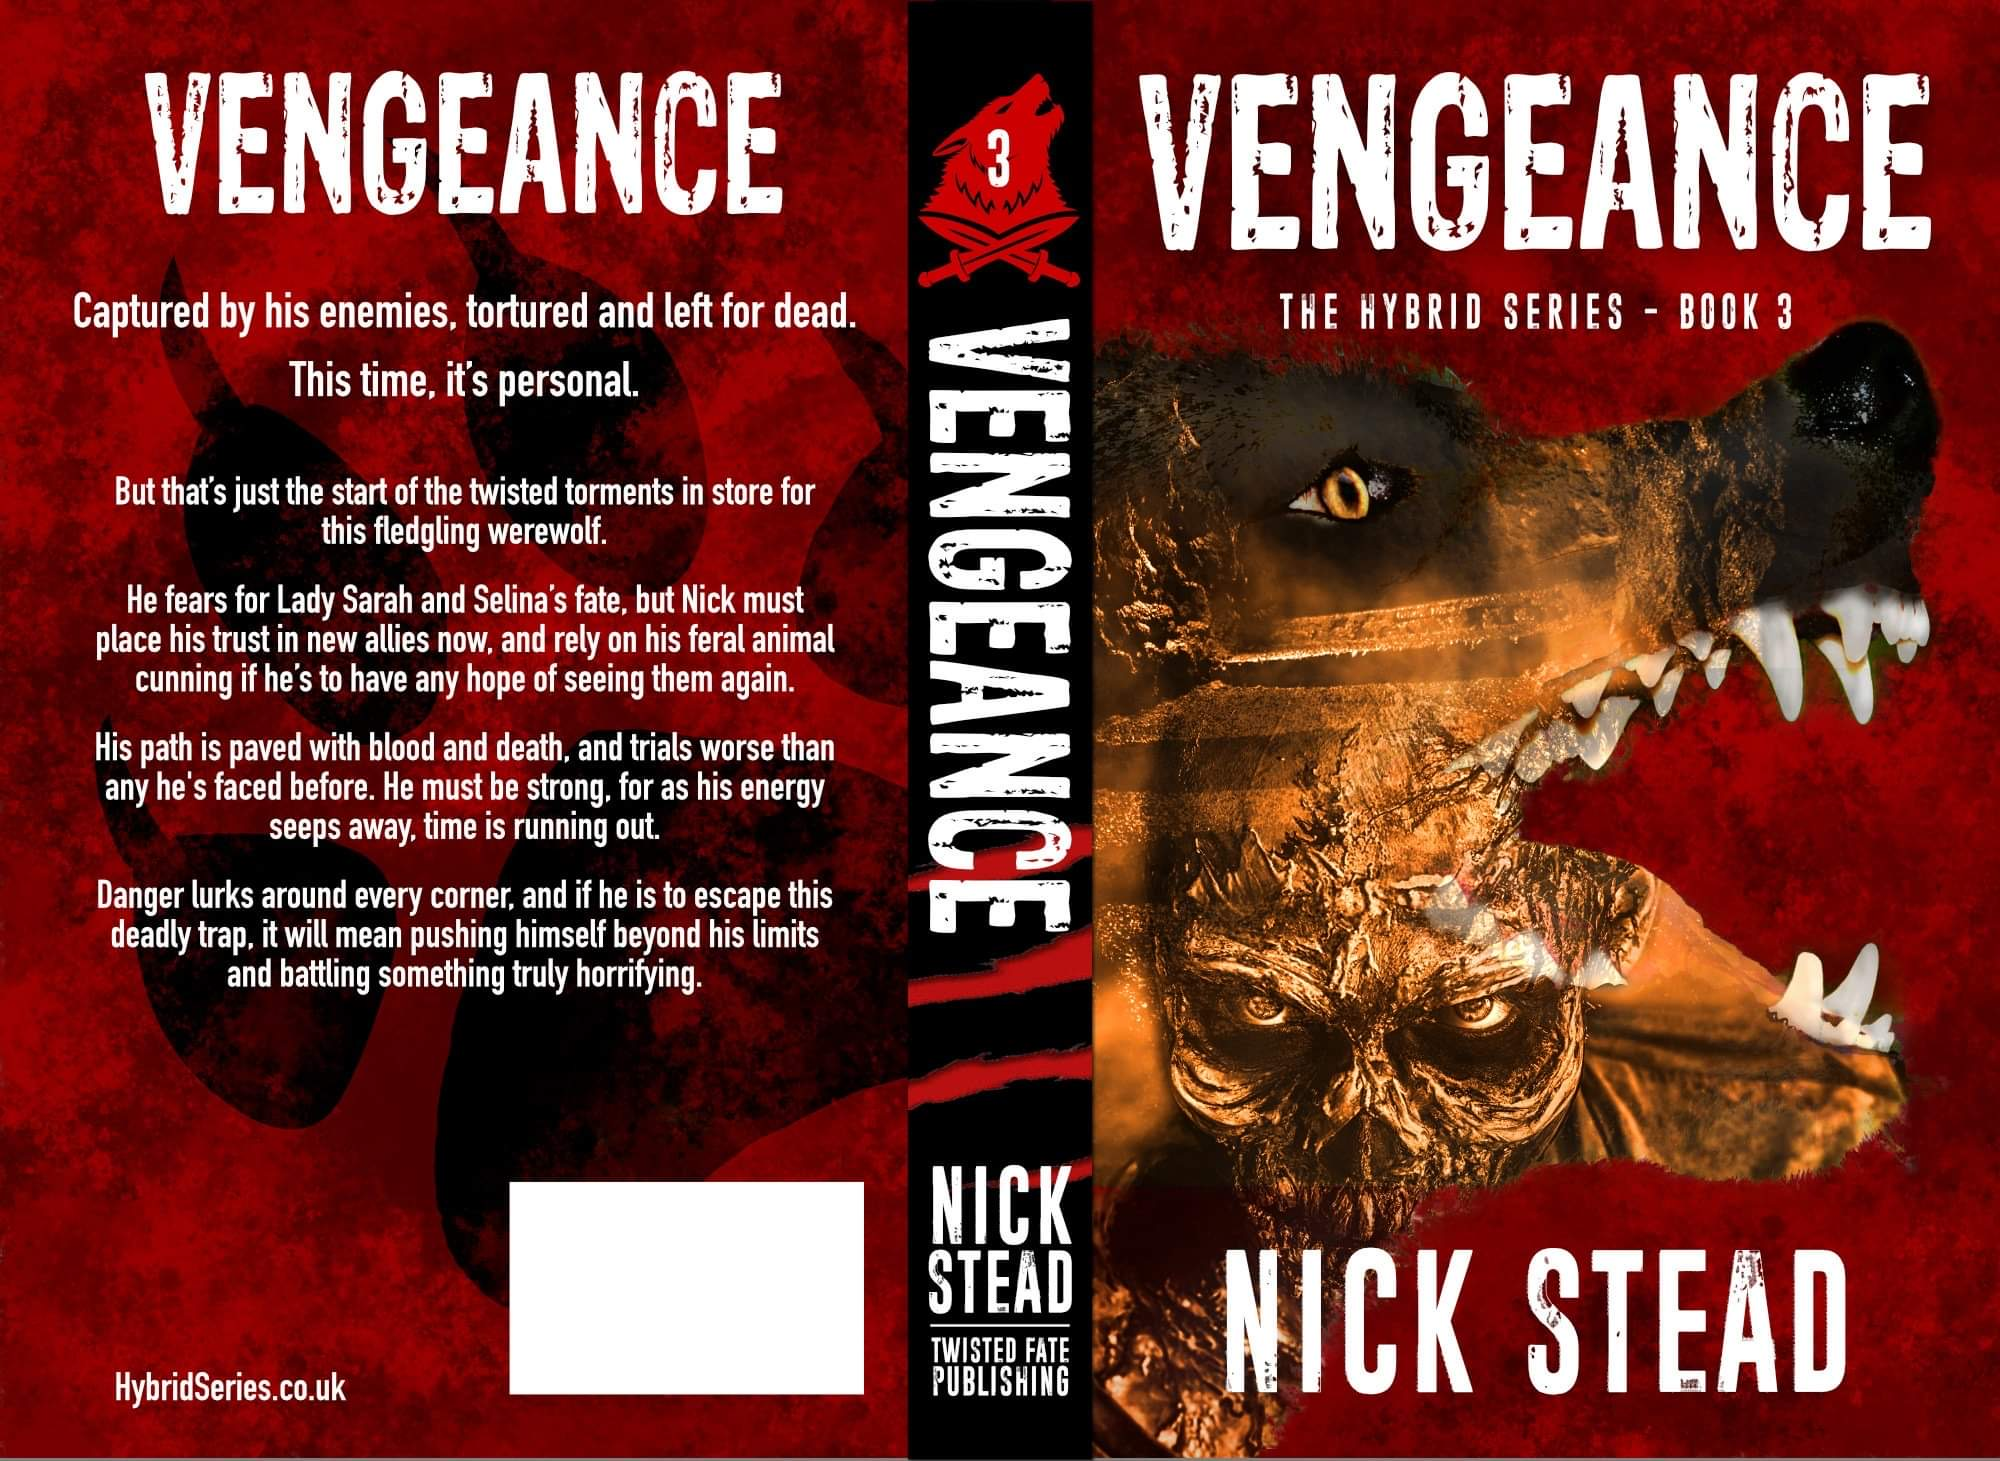 Nick Stead's revised edition of Vengeancenow available from Twisted Fate Publishing